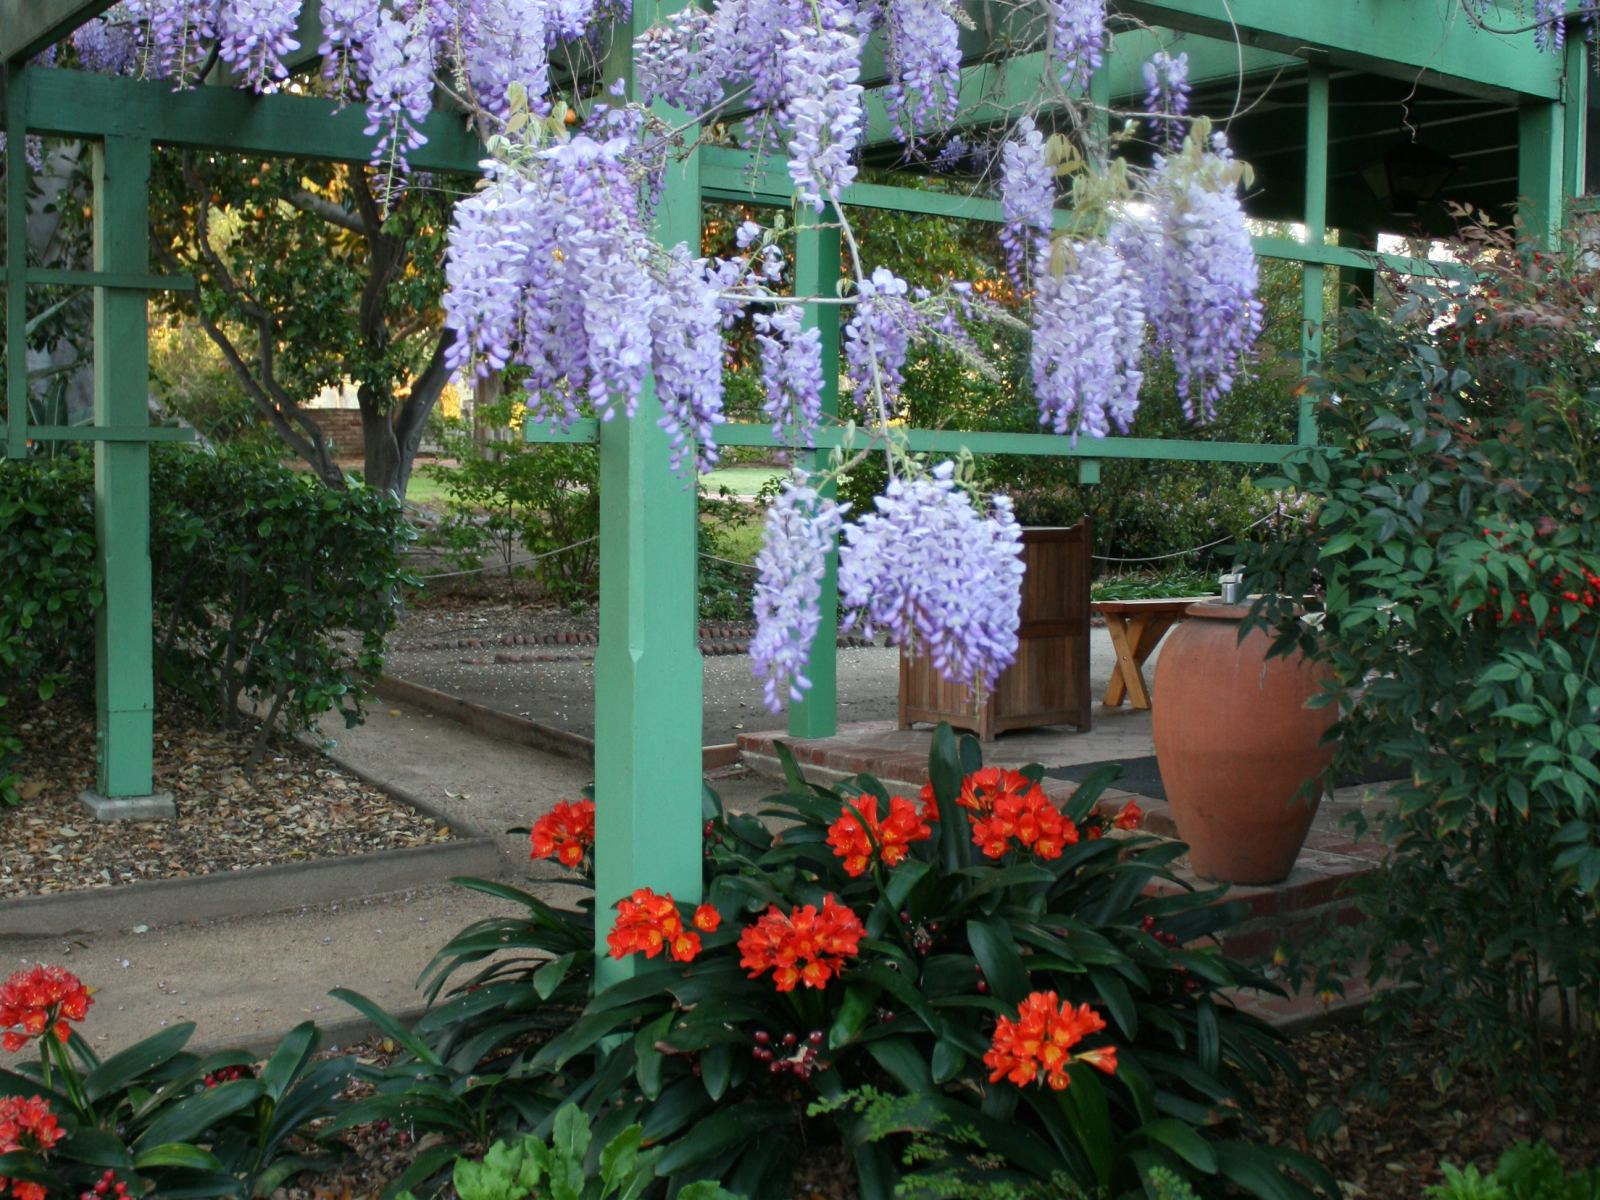 Wisteria over green lattice with orange flowers and greenery in the foreground